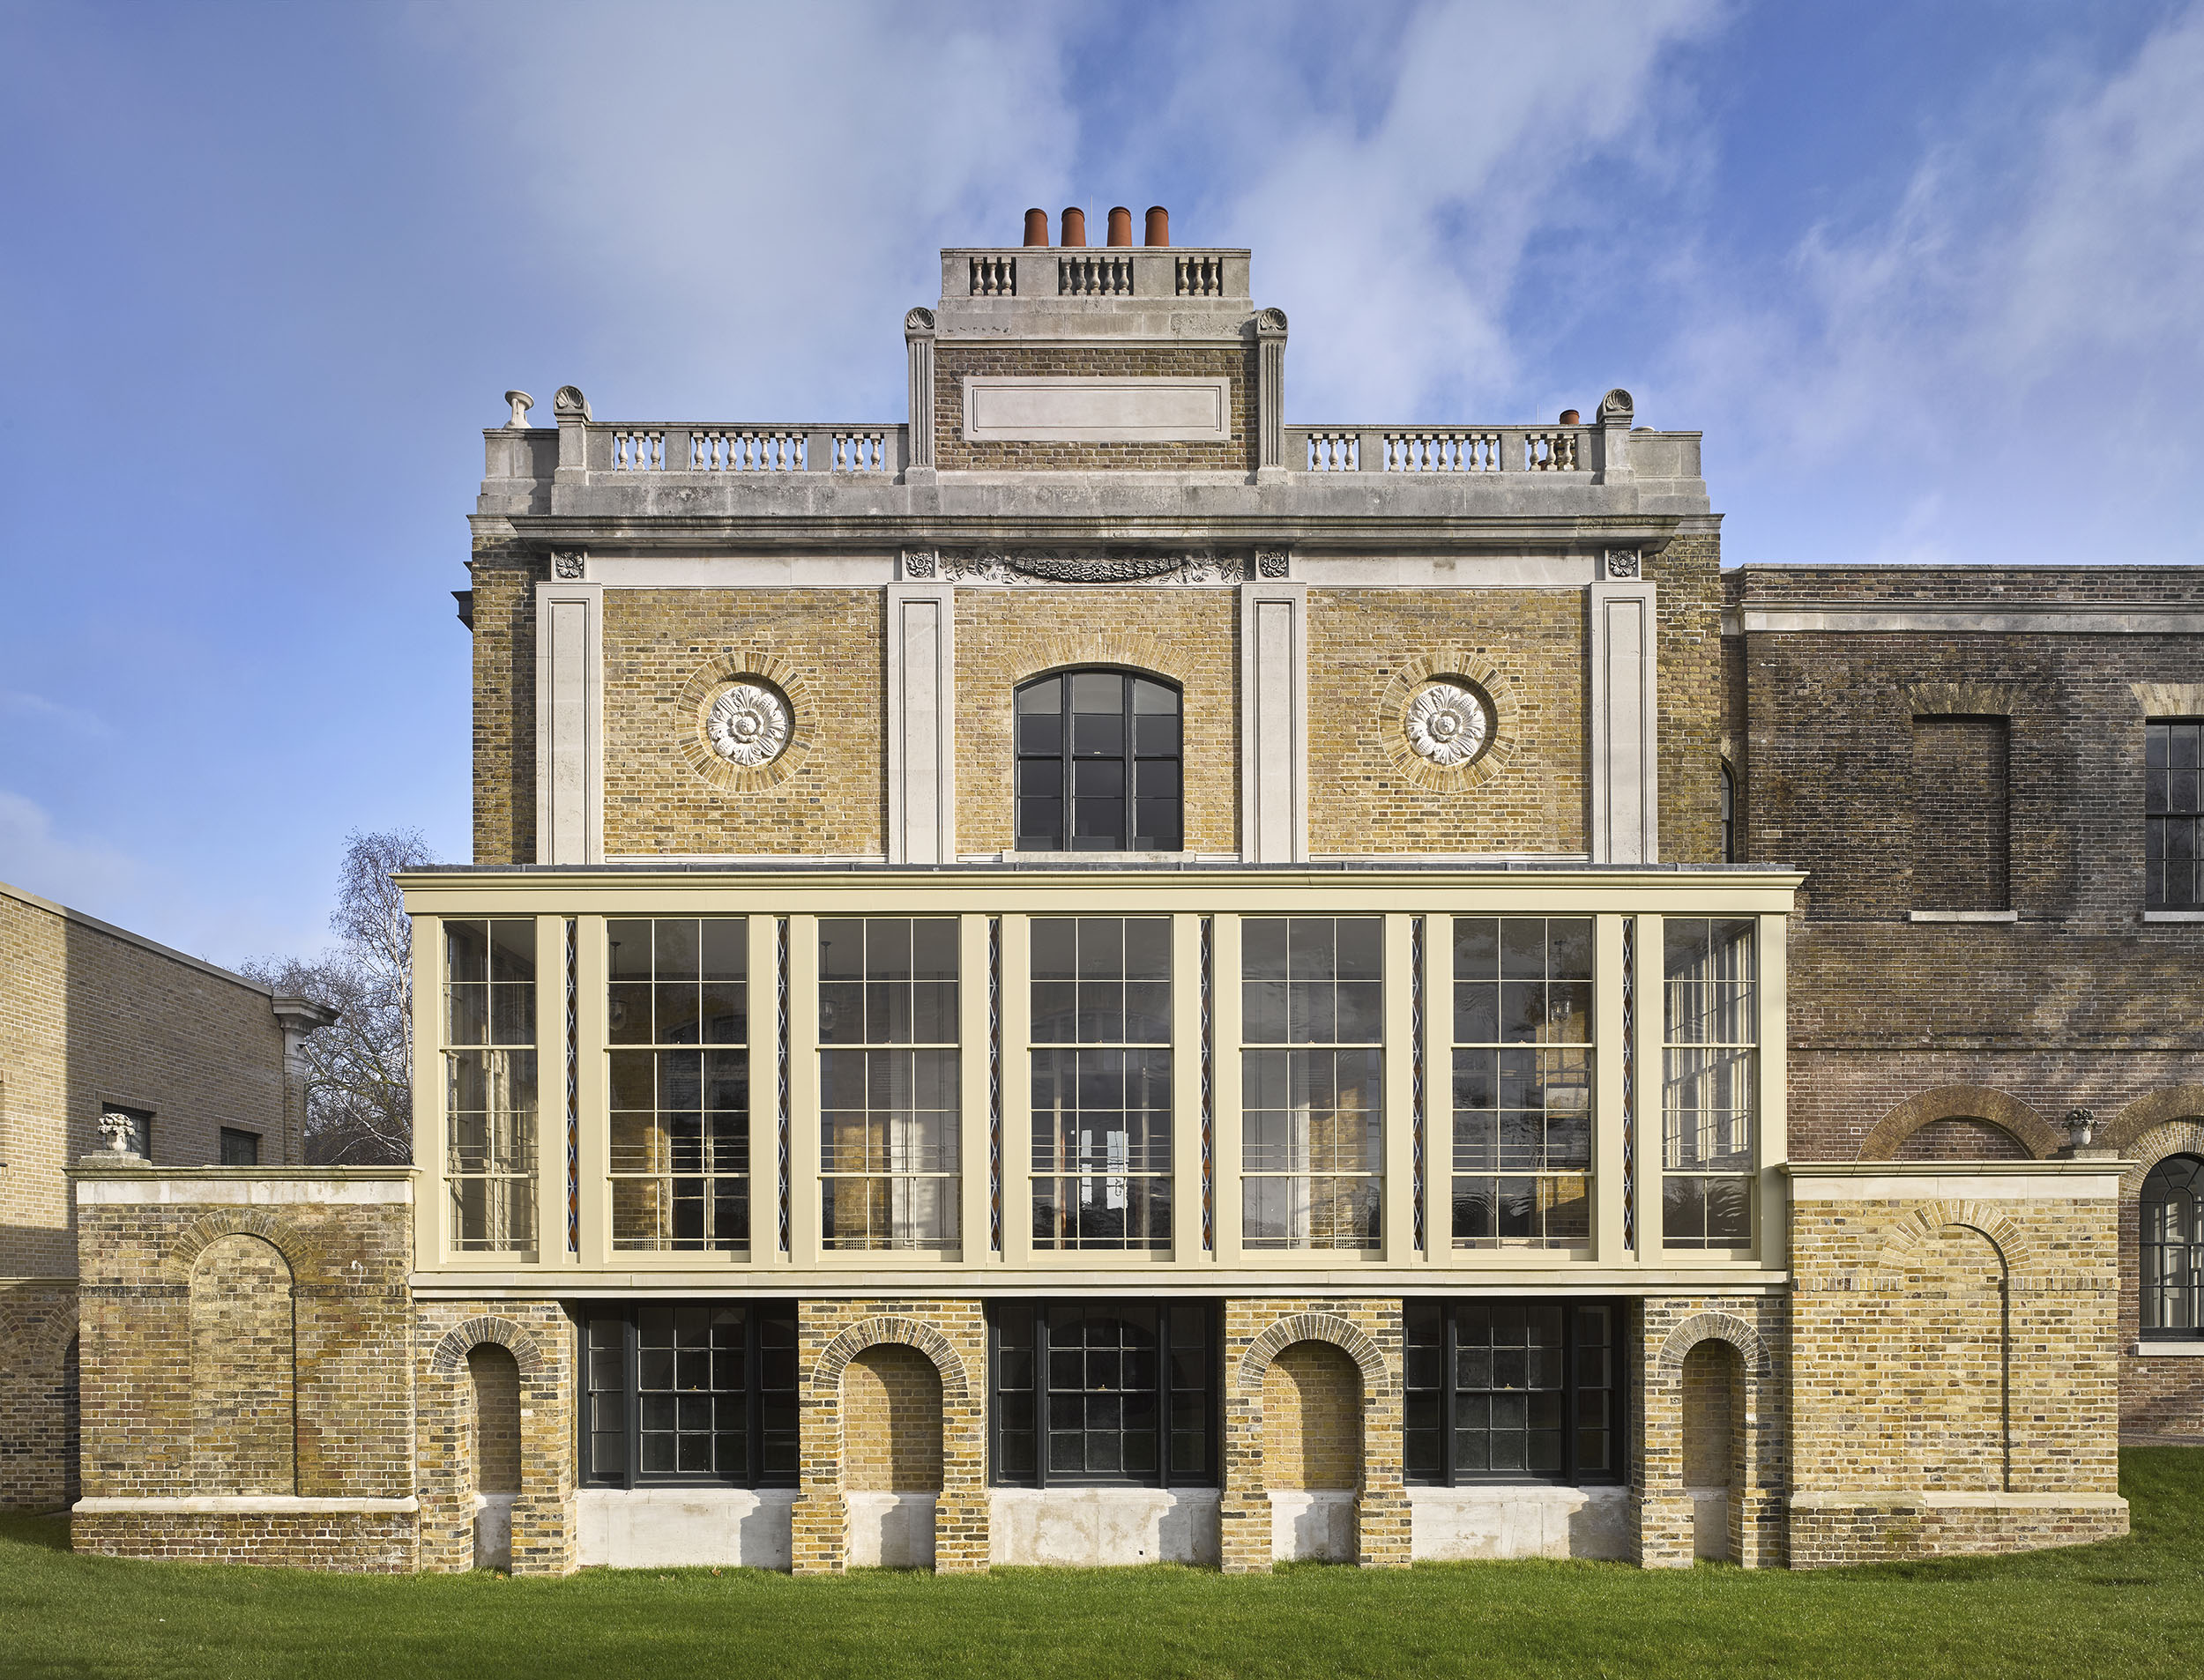 Pitzhanger Manor: The Ealing villa that's the great John Soane's 'architectural self-portrait'